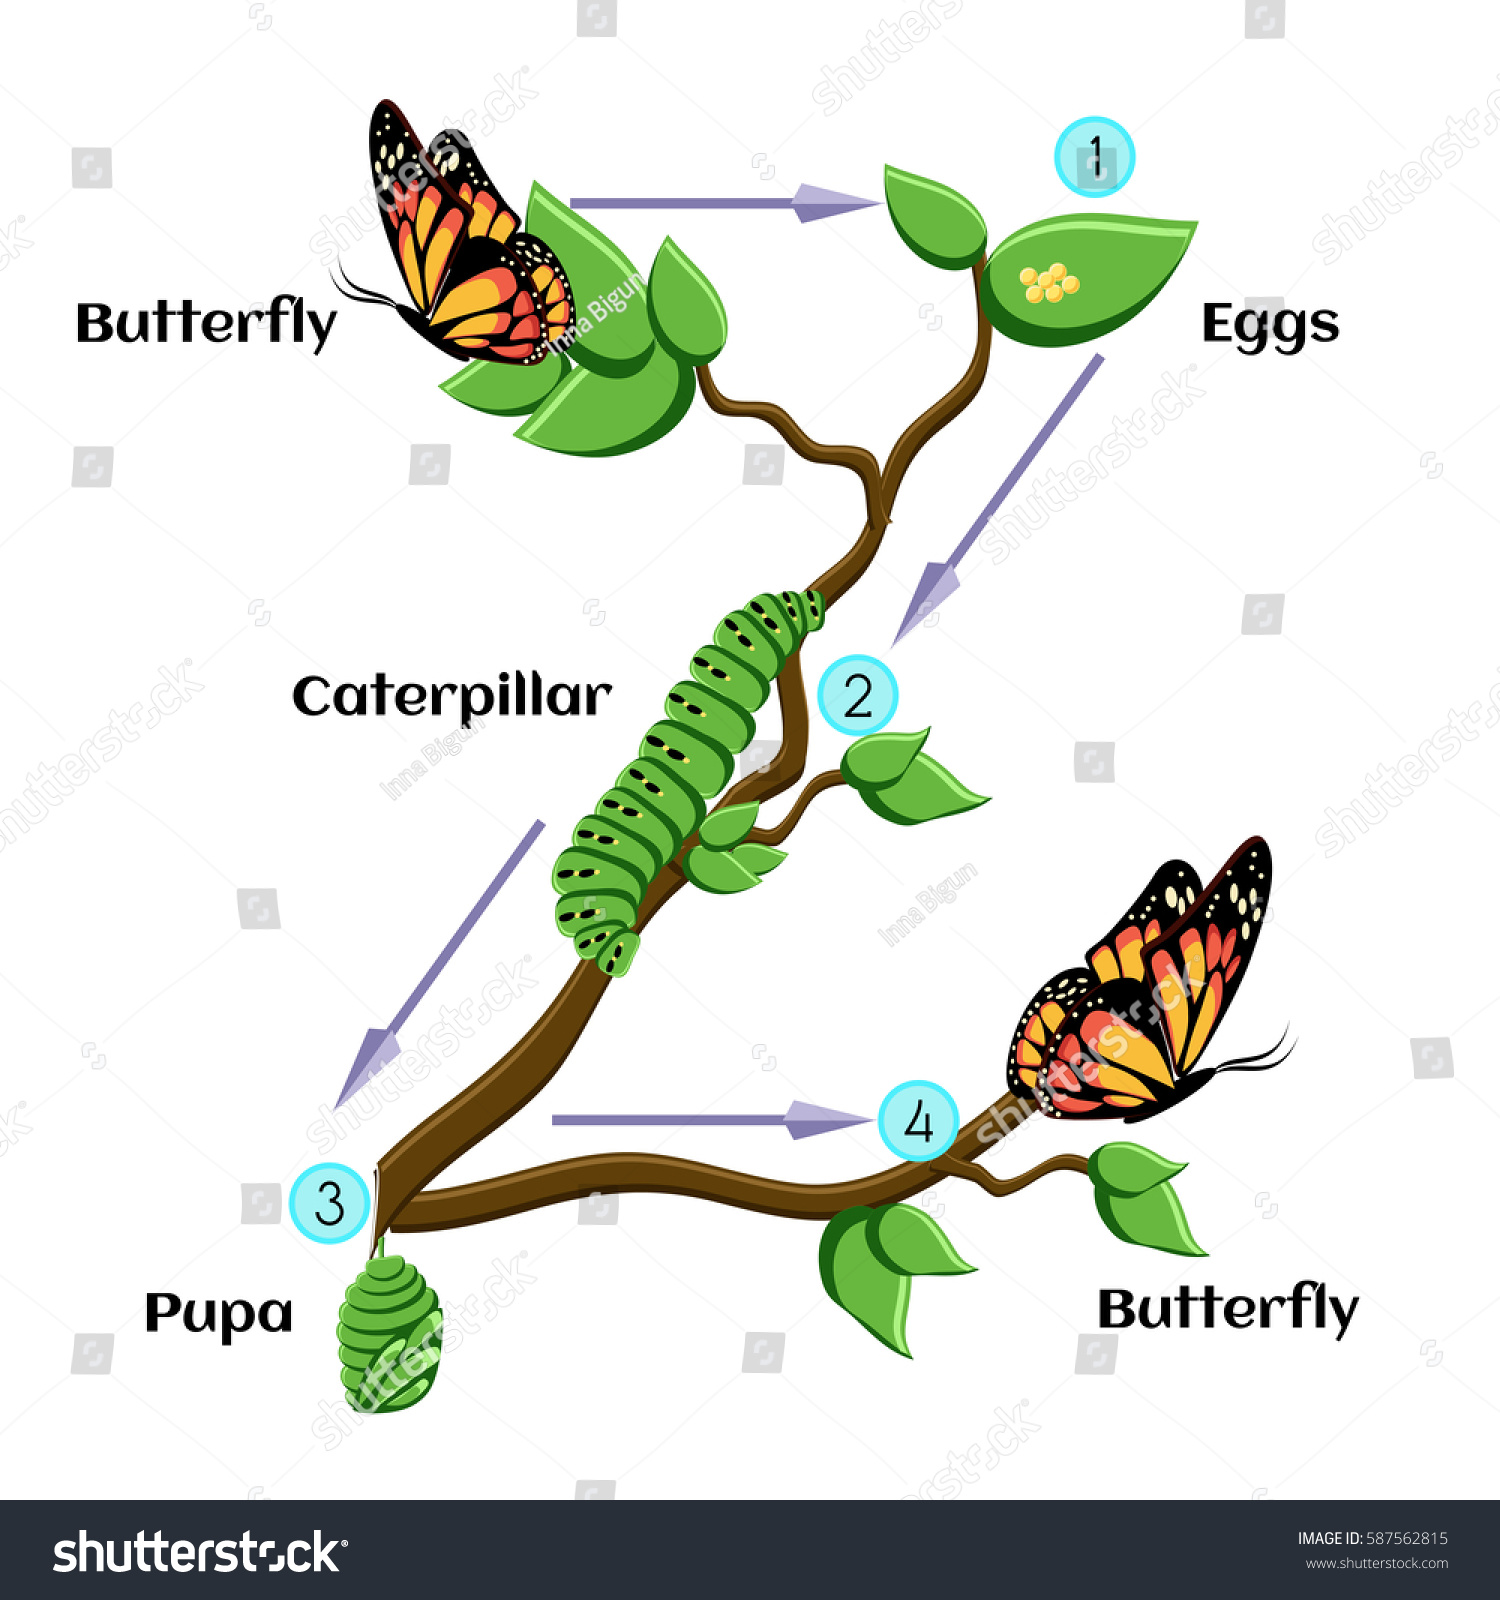 life cycle butterfly eggs caterpillar pupa stock vector 587562815